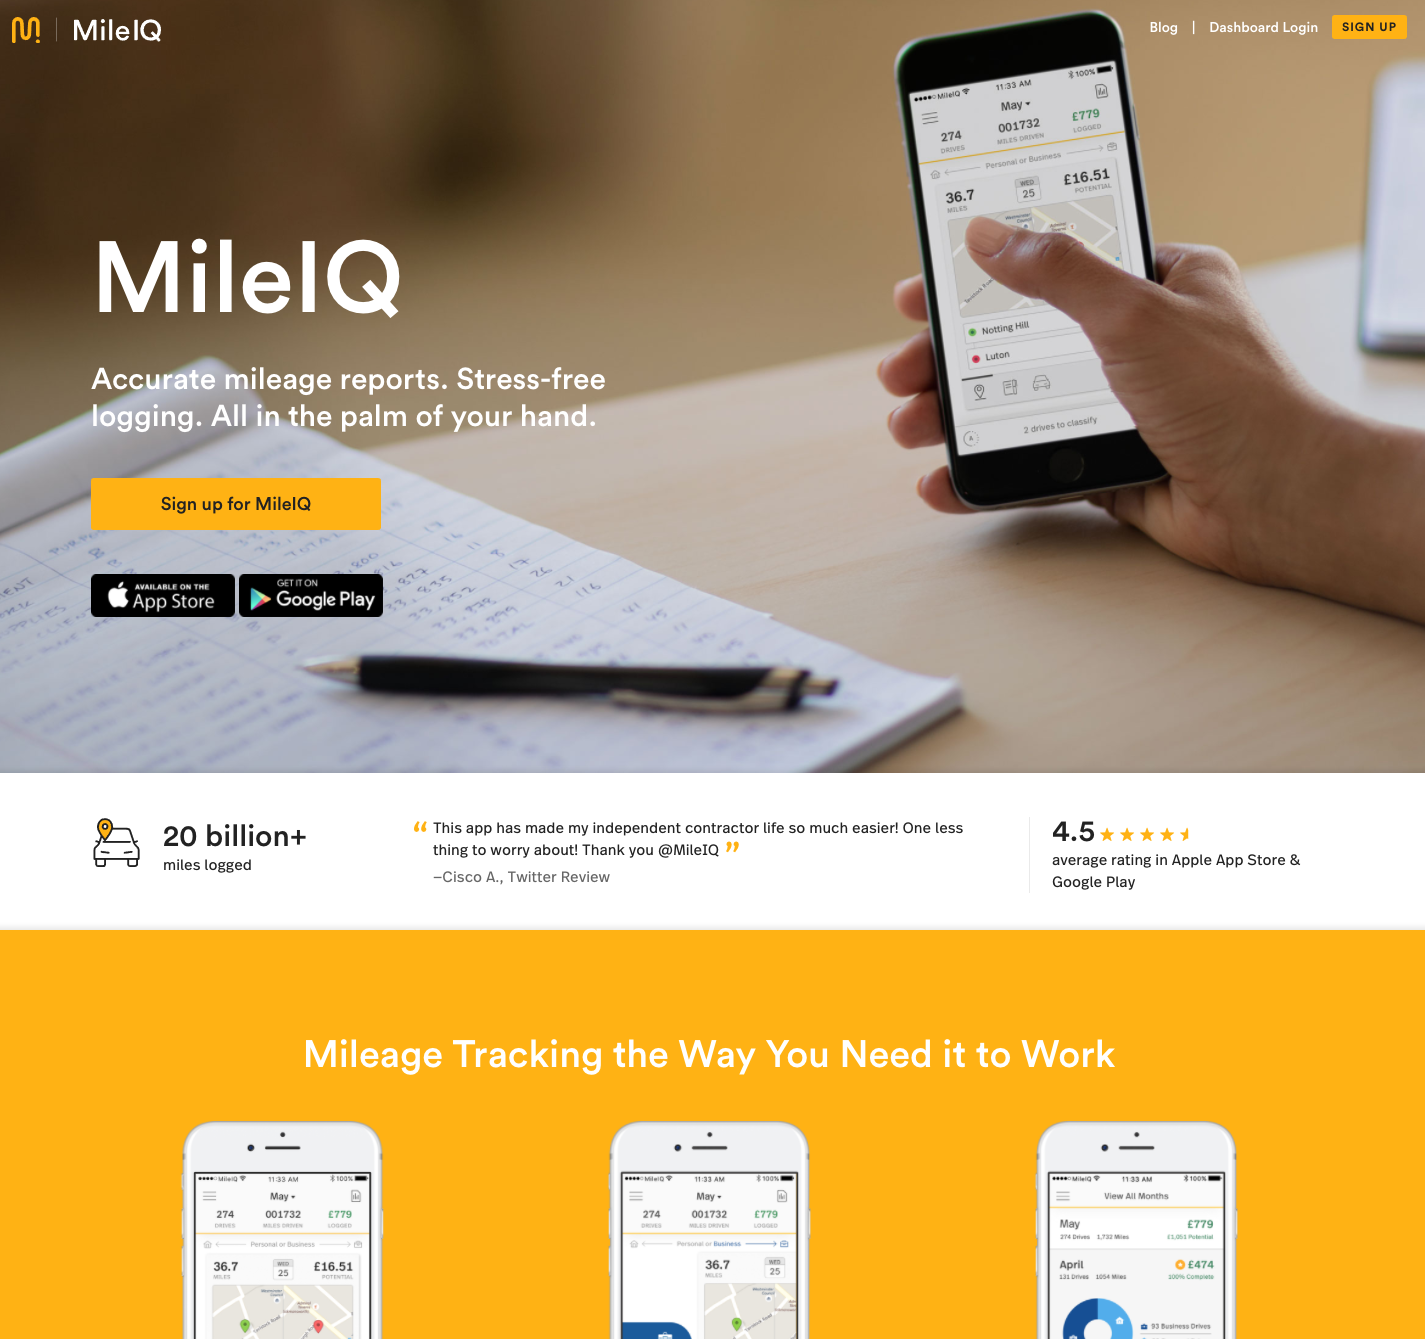 This is an image of the MileIQ UK website.